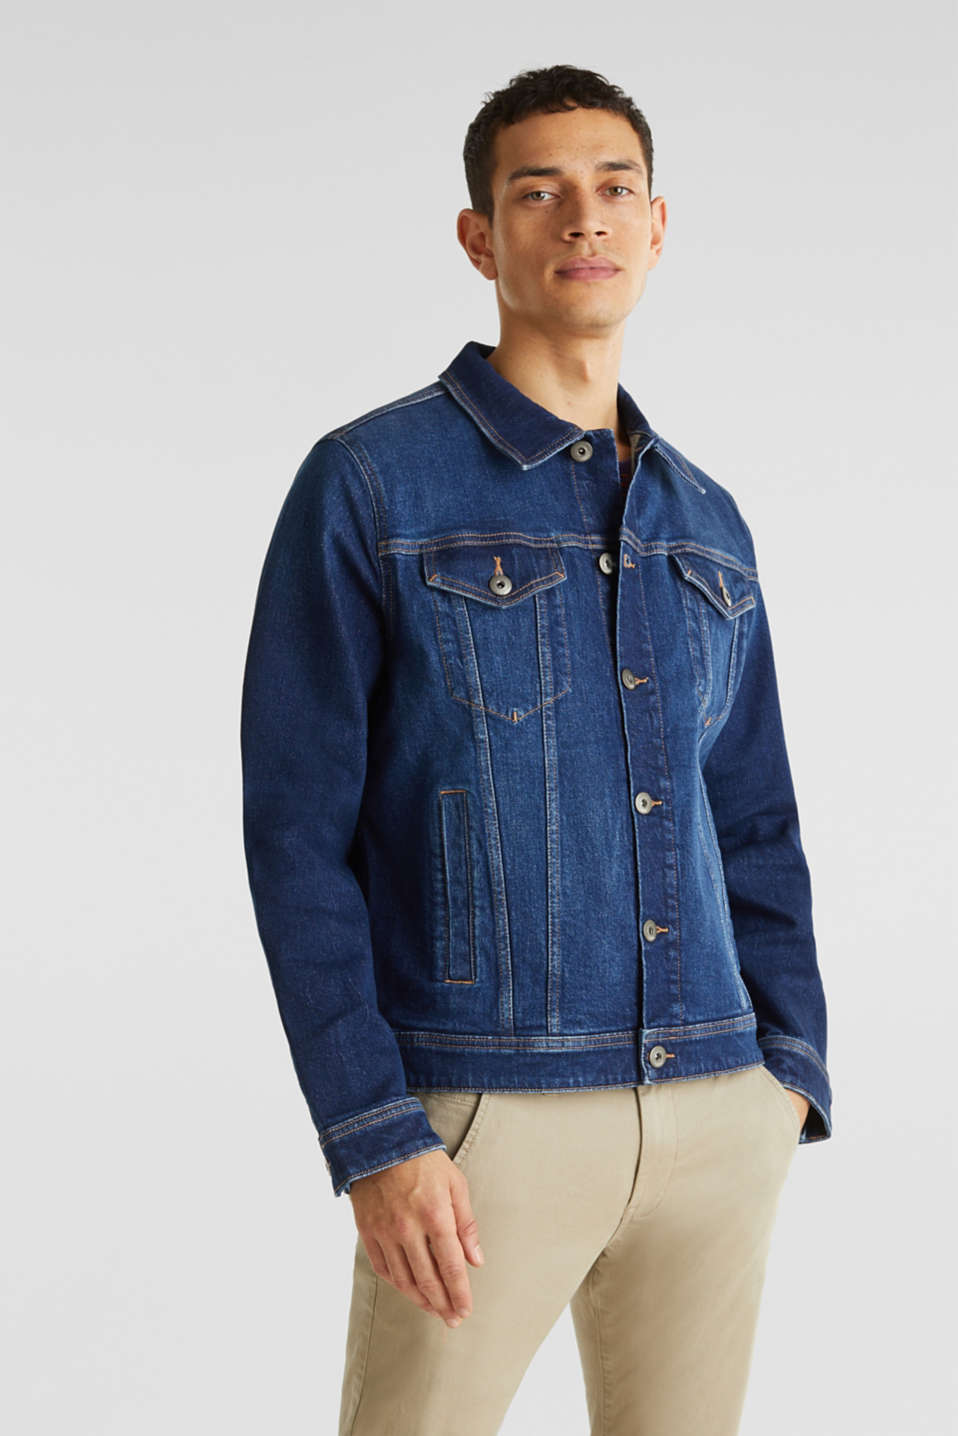 edc - Denim jacket with stretch for comfort